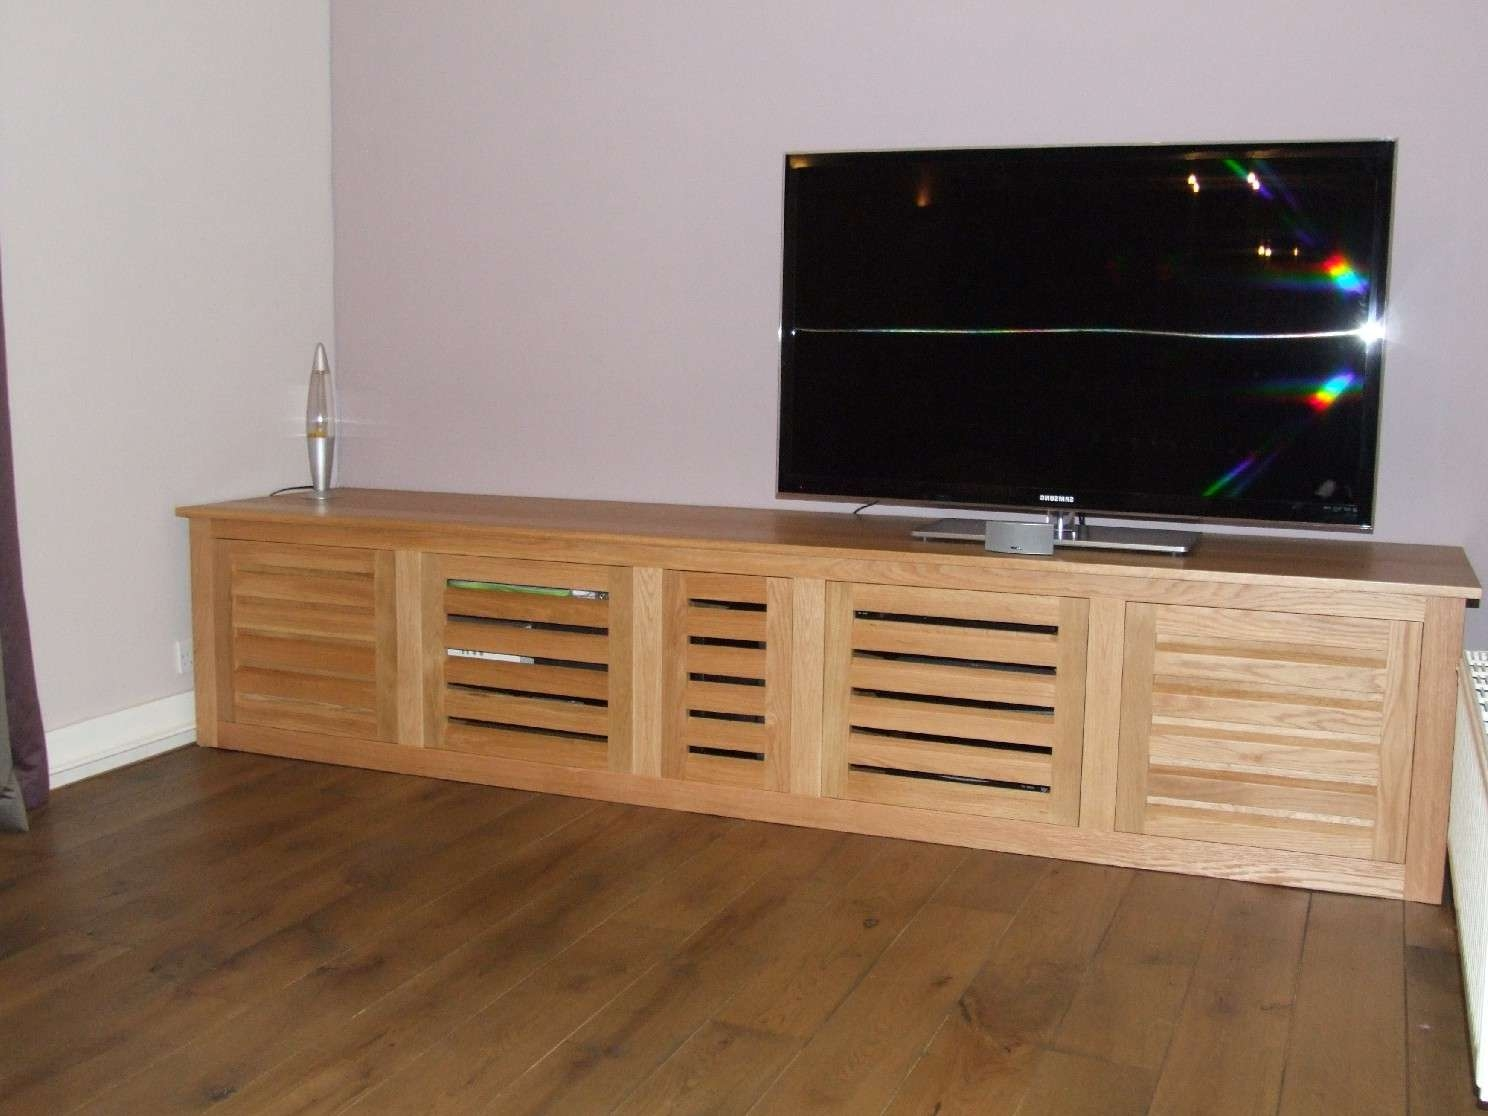 Bespoke Oak Tv Cabinet With Louvered Doors Pertaining To Oak Tv Cabinets With Doors (View 1 of 20)